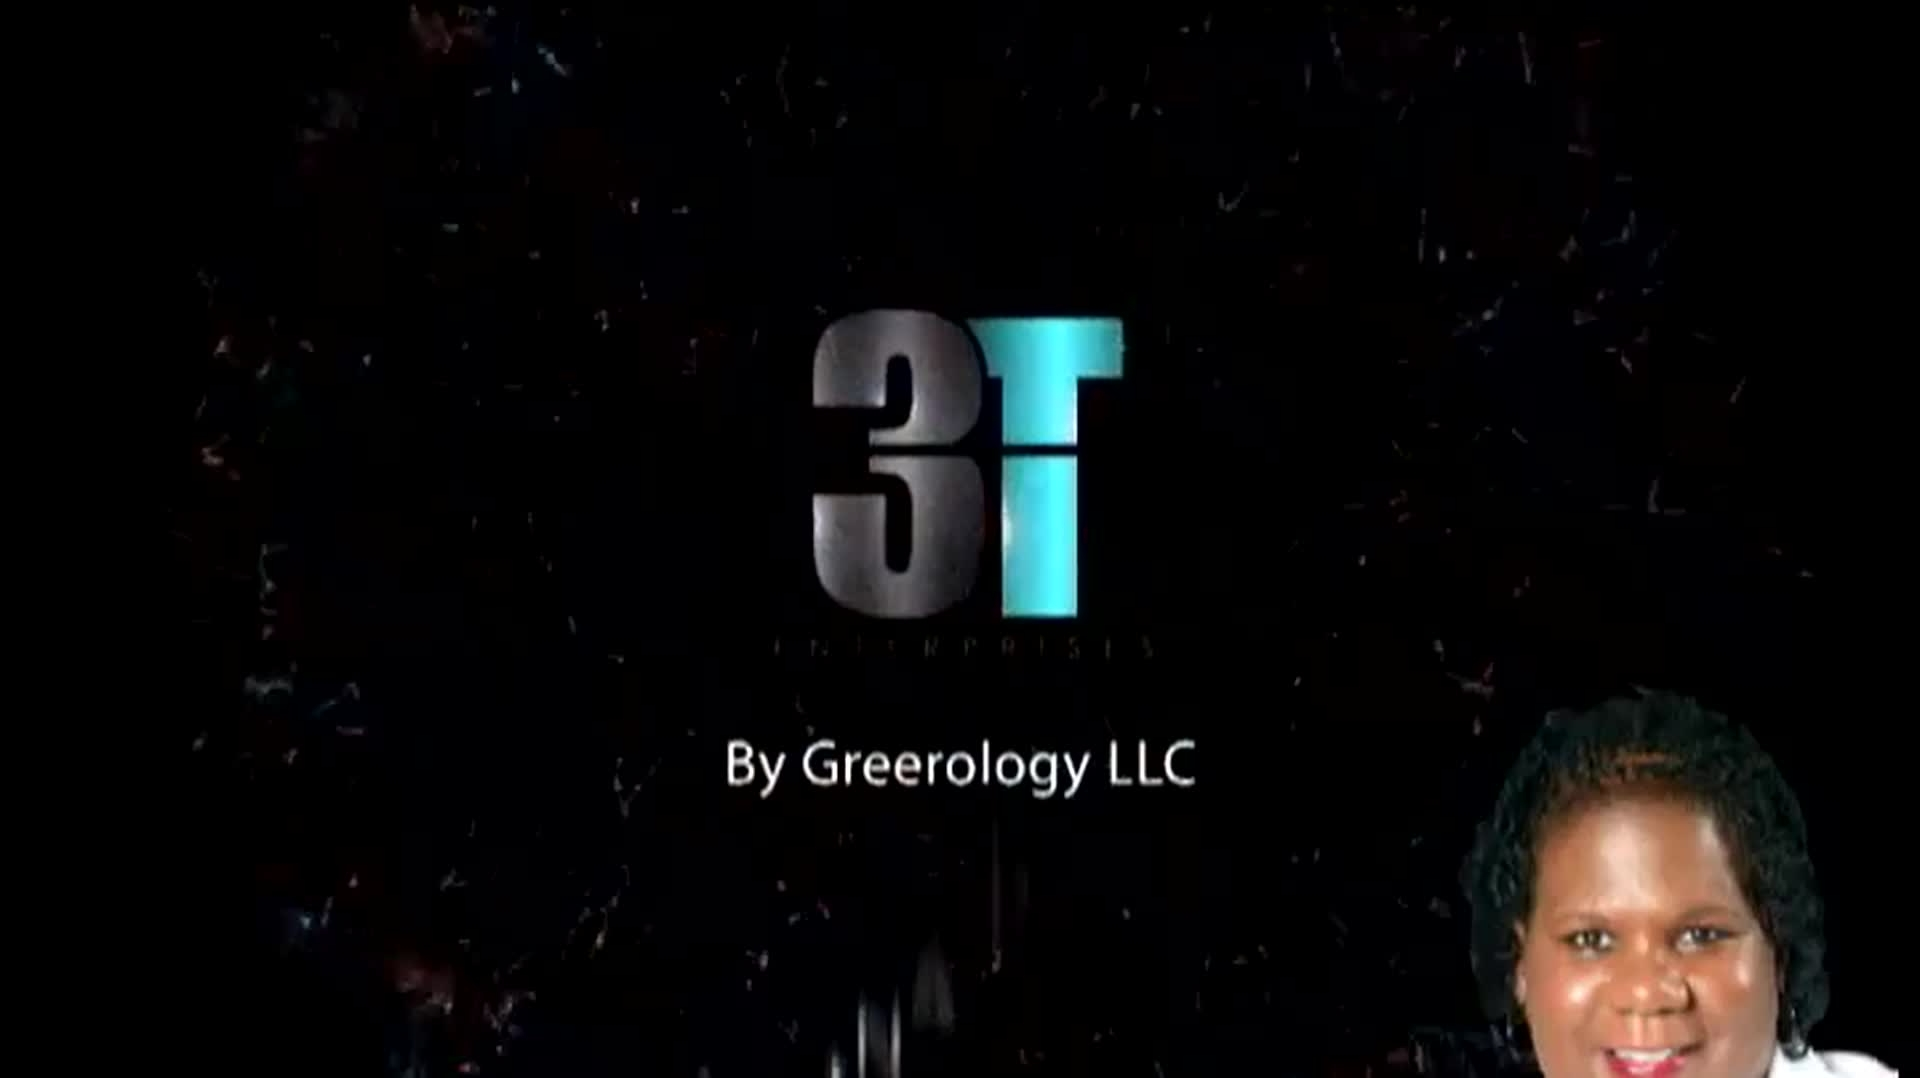 3T Consulting